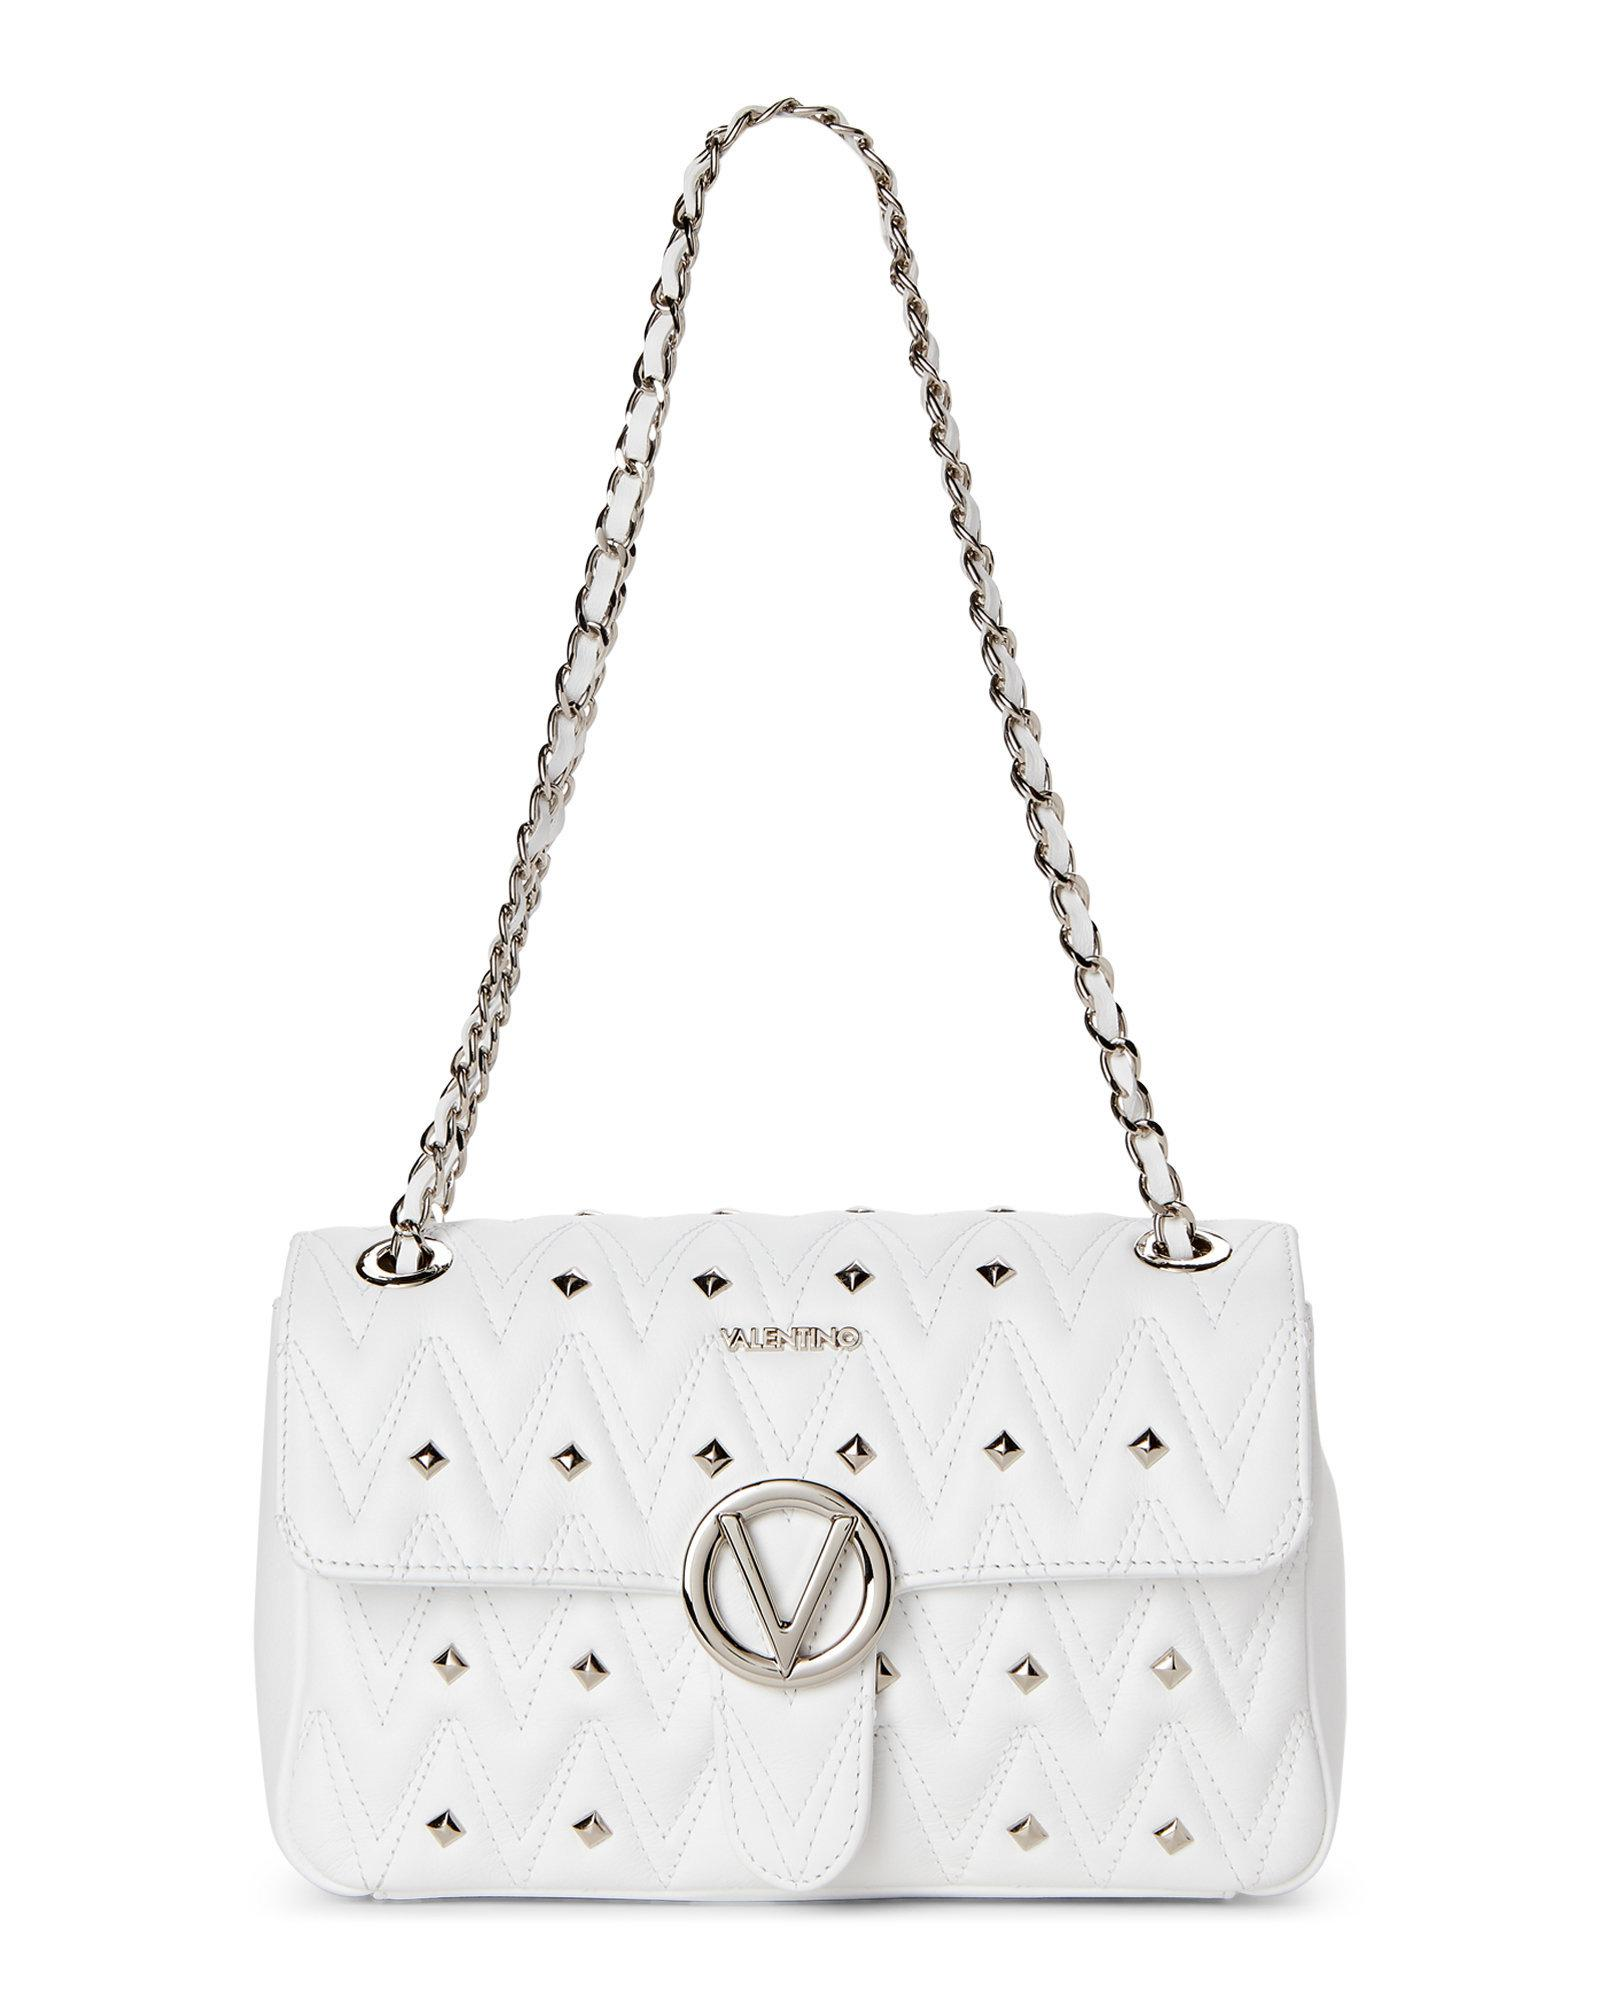 69ce676c5ac0 Lyst - Valentino By Mario Valentino White Antoinette Studded Chain ...